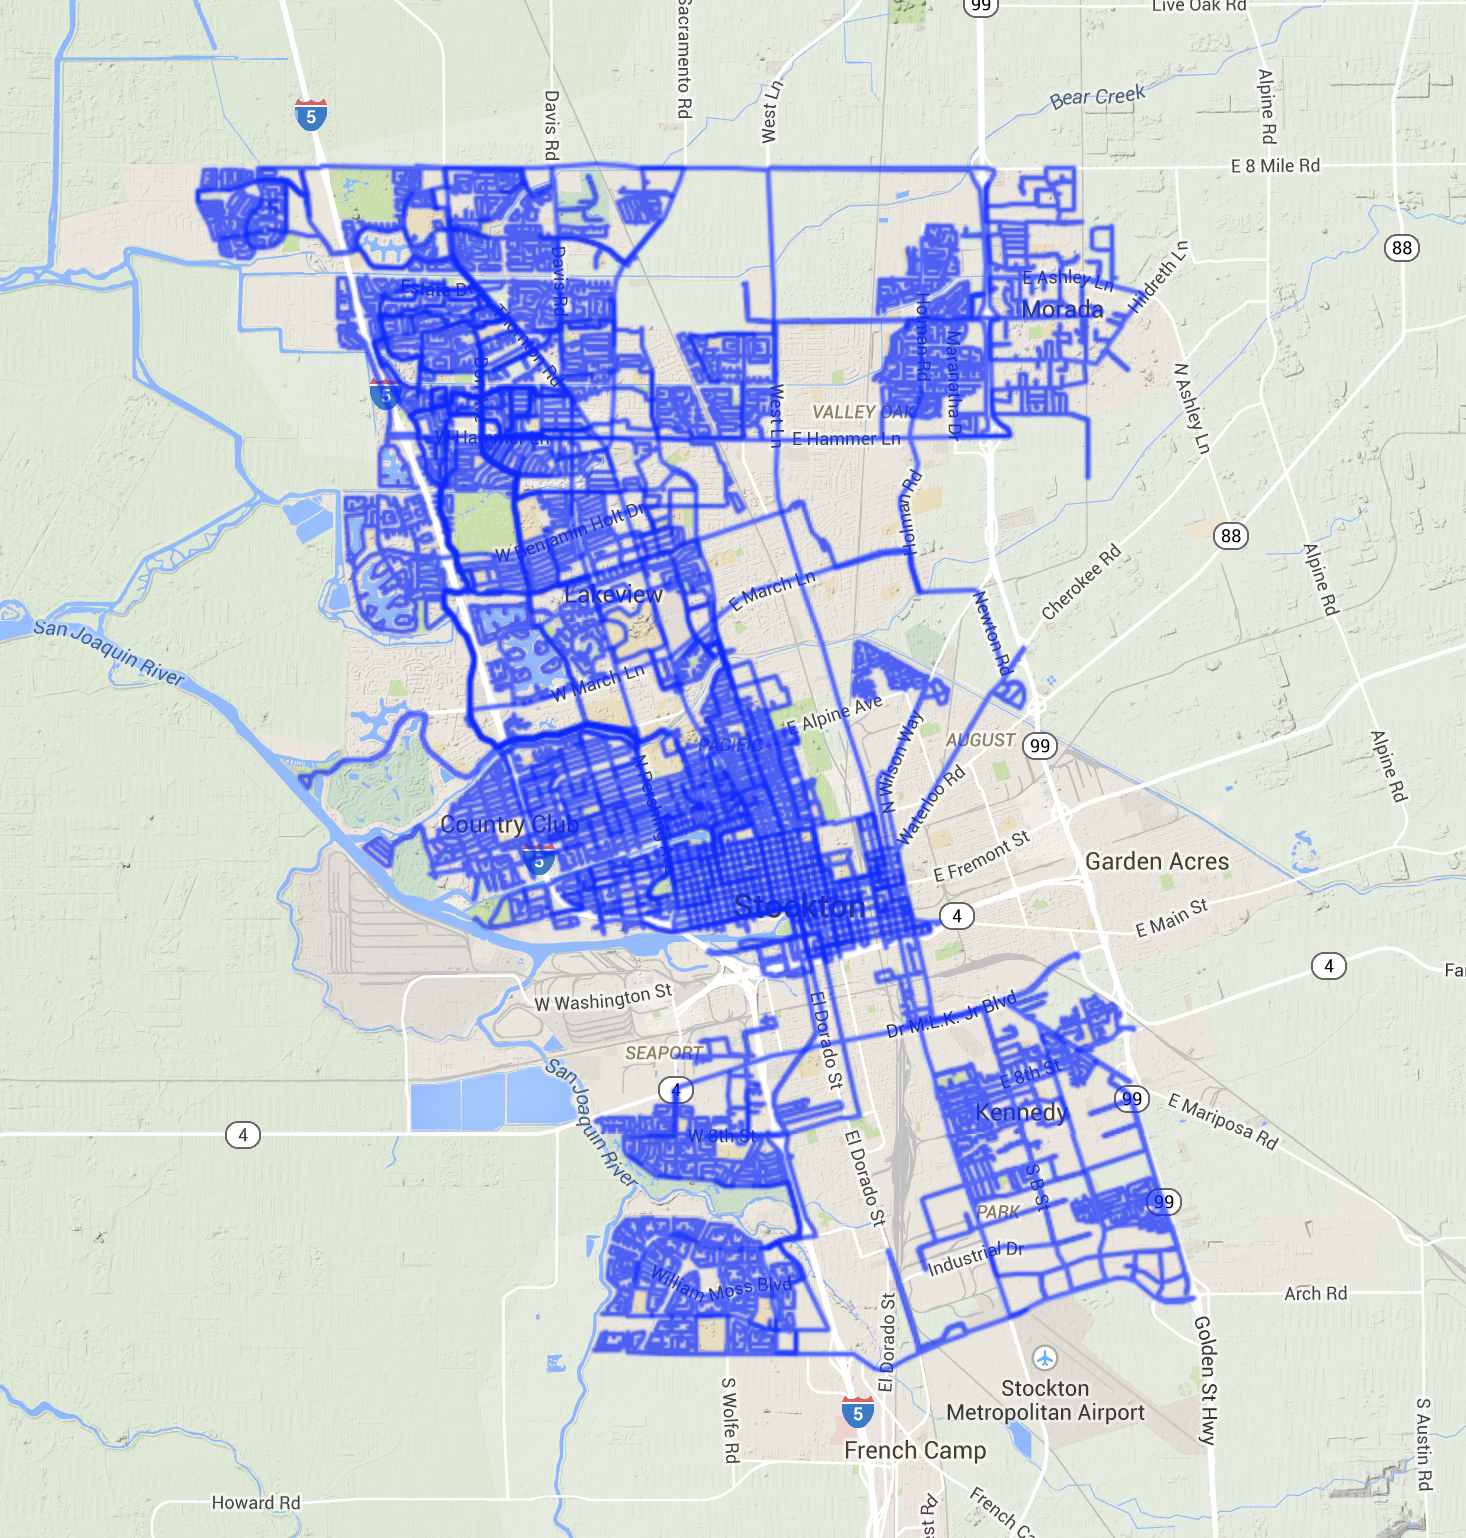 Every street, from 9/27/14 - 11/23/14